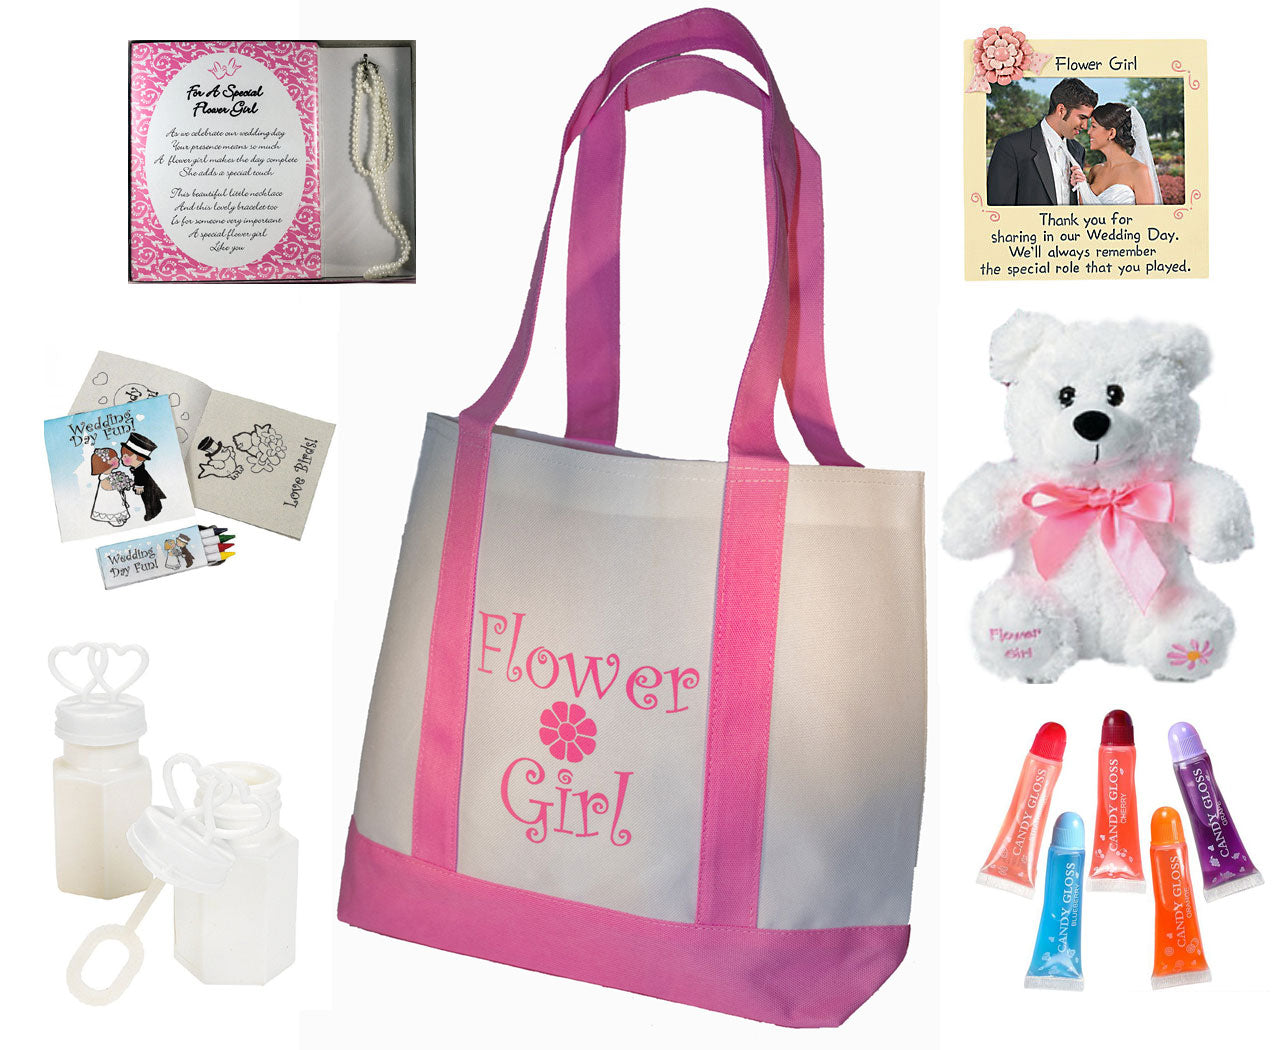 Best Flower Girl Gifts - Design your own Gifts Set